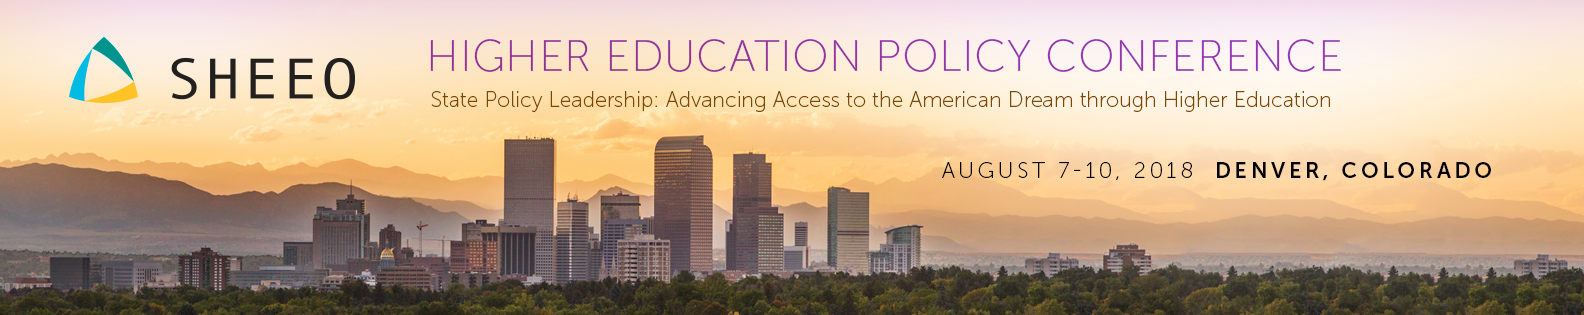 2018 SHEEO Higher Education Policy Conference - State Policy Leadership: Advancing Access to the American Dream through Higher Education